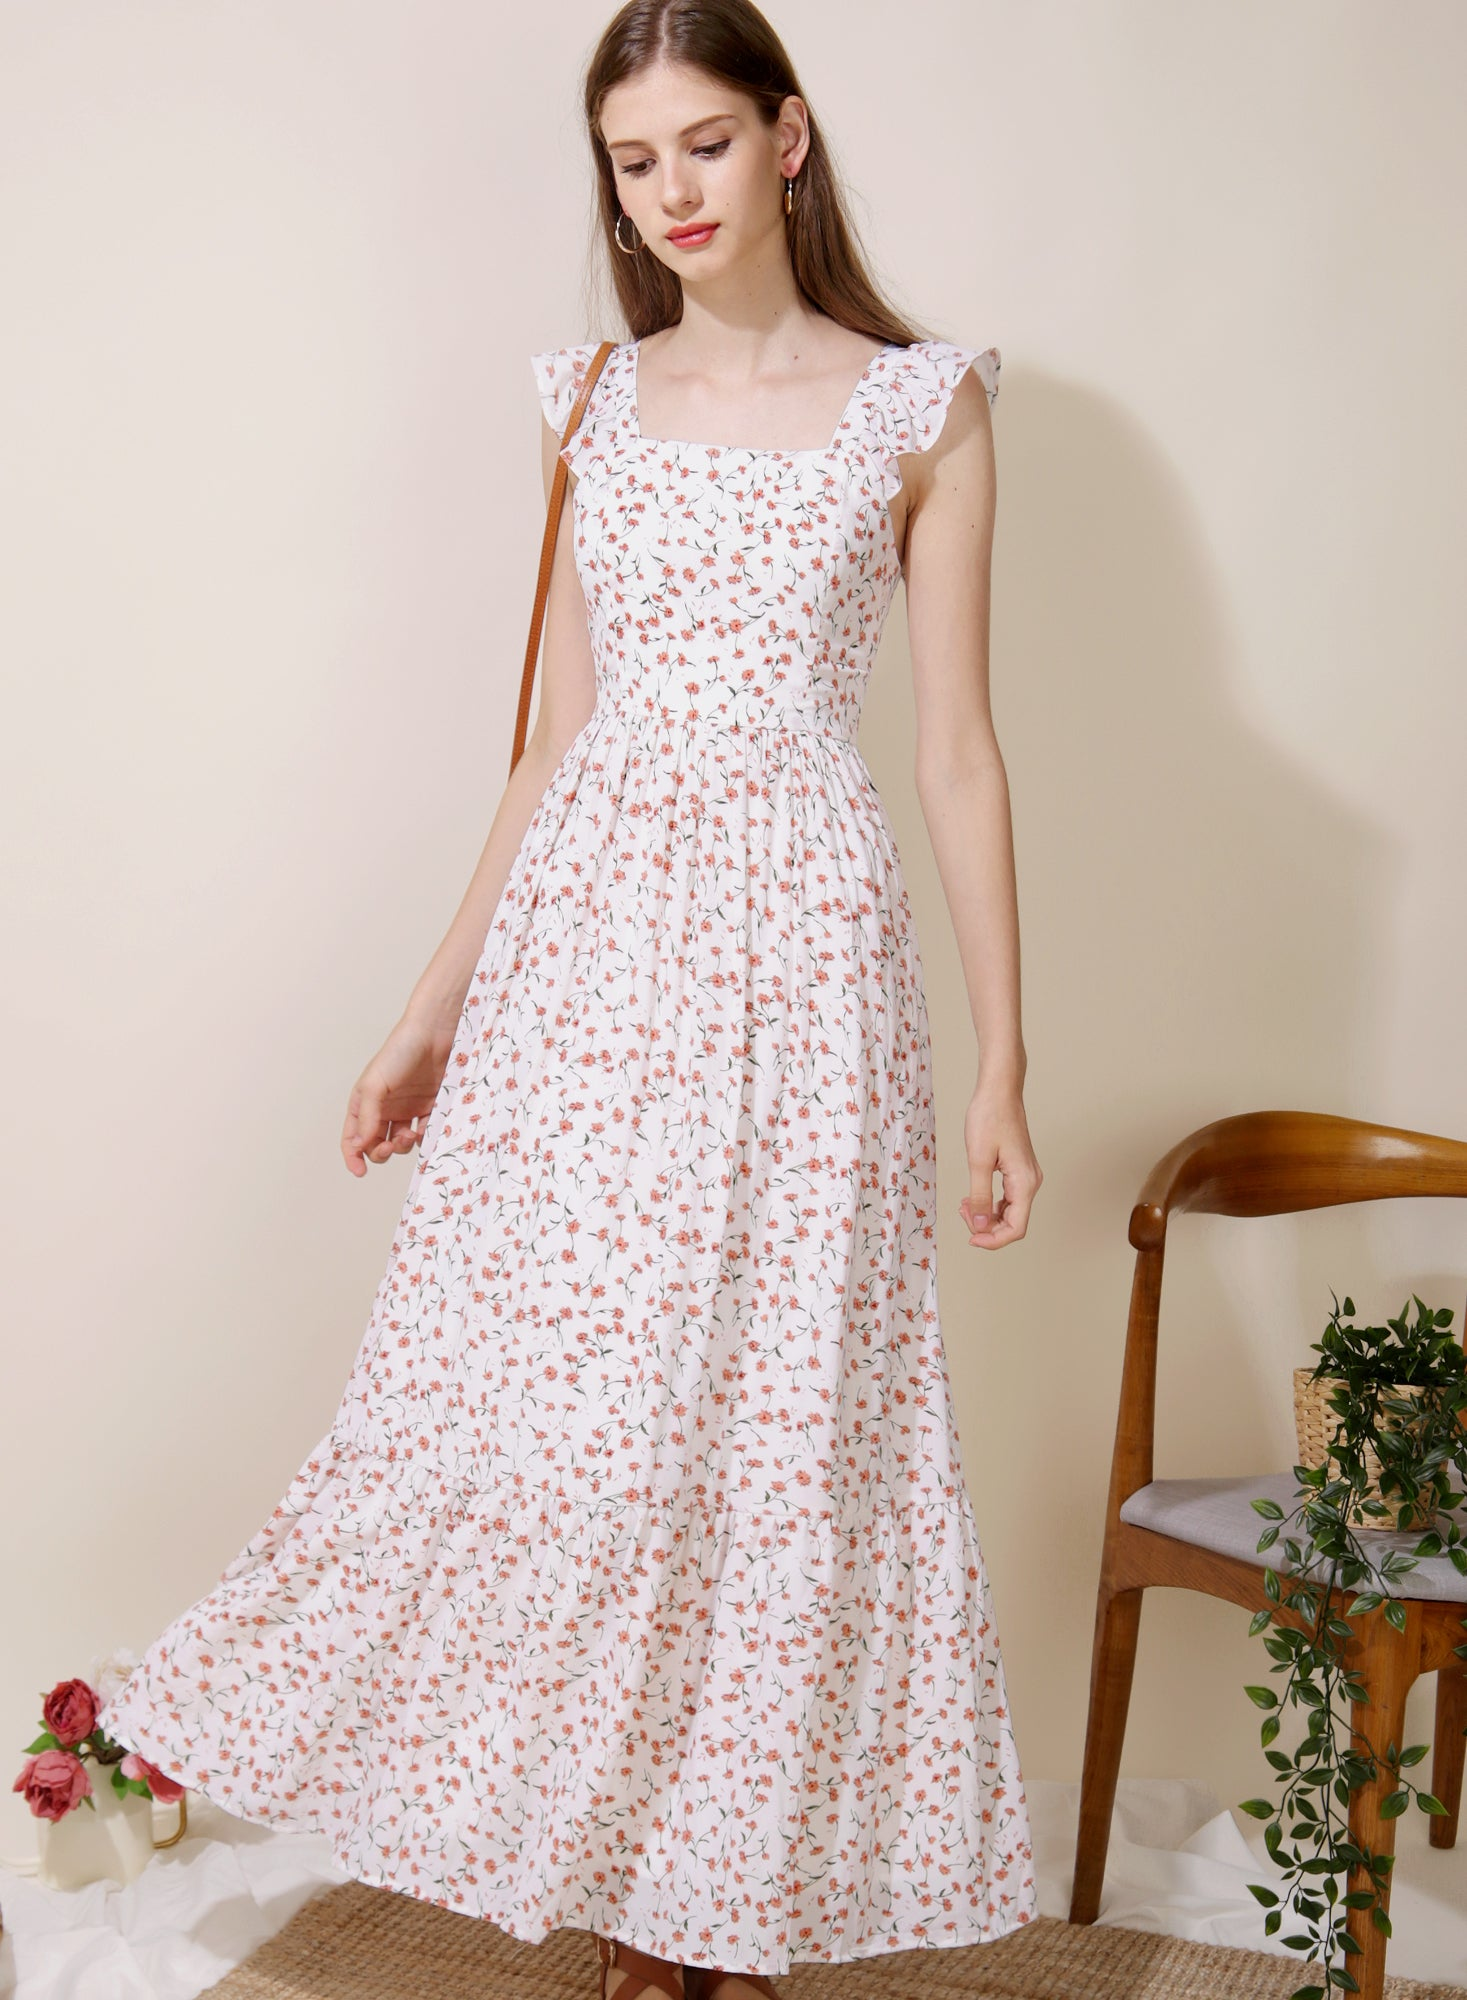 Ceremony Frill Straps Maxi Dress (Floral) at $ 46.50 only sold at And Well Dressed Online Fashion Store Singapore